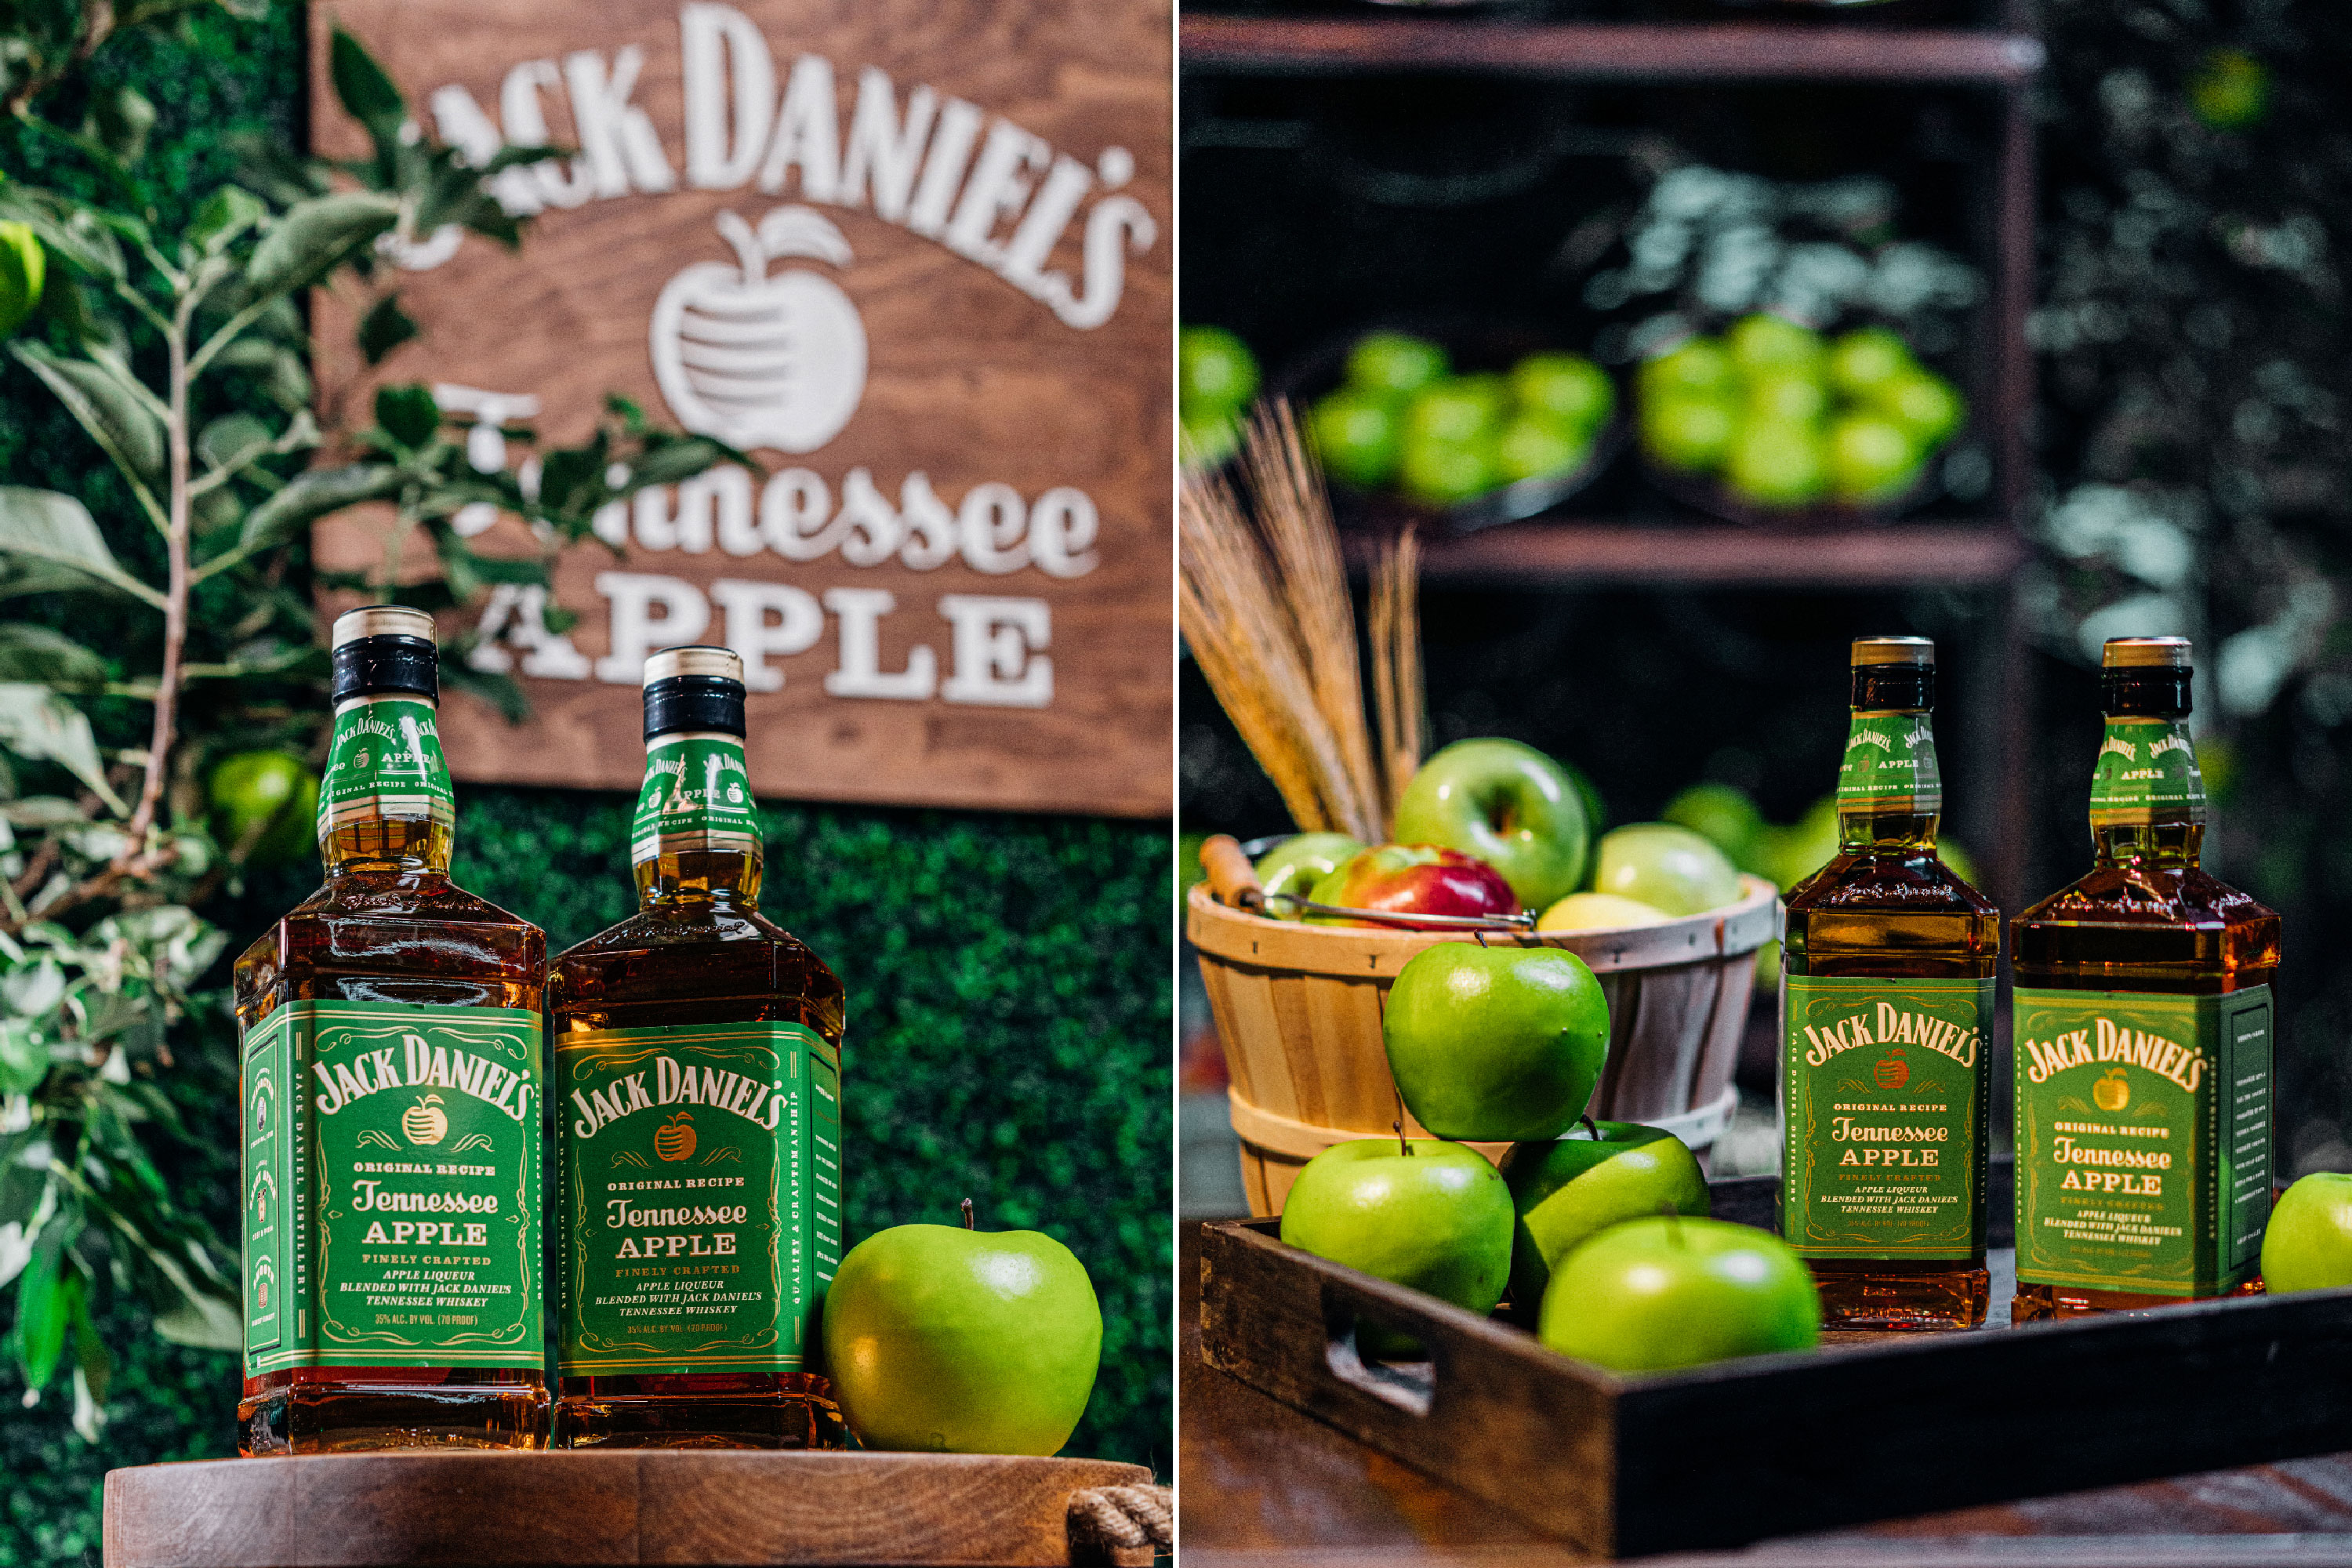 Jack Daniels Tennessee Apple bottles at the bar